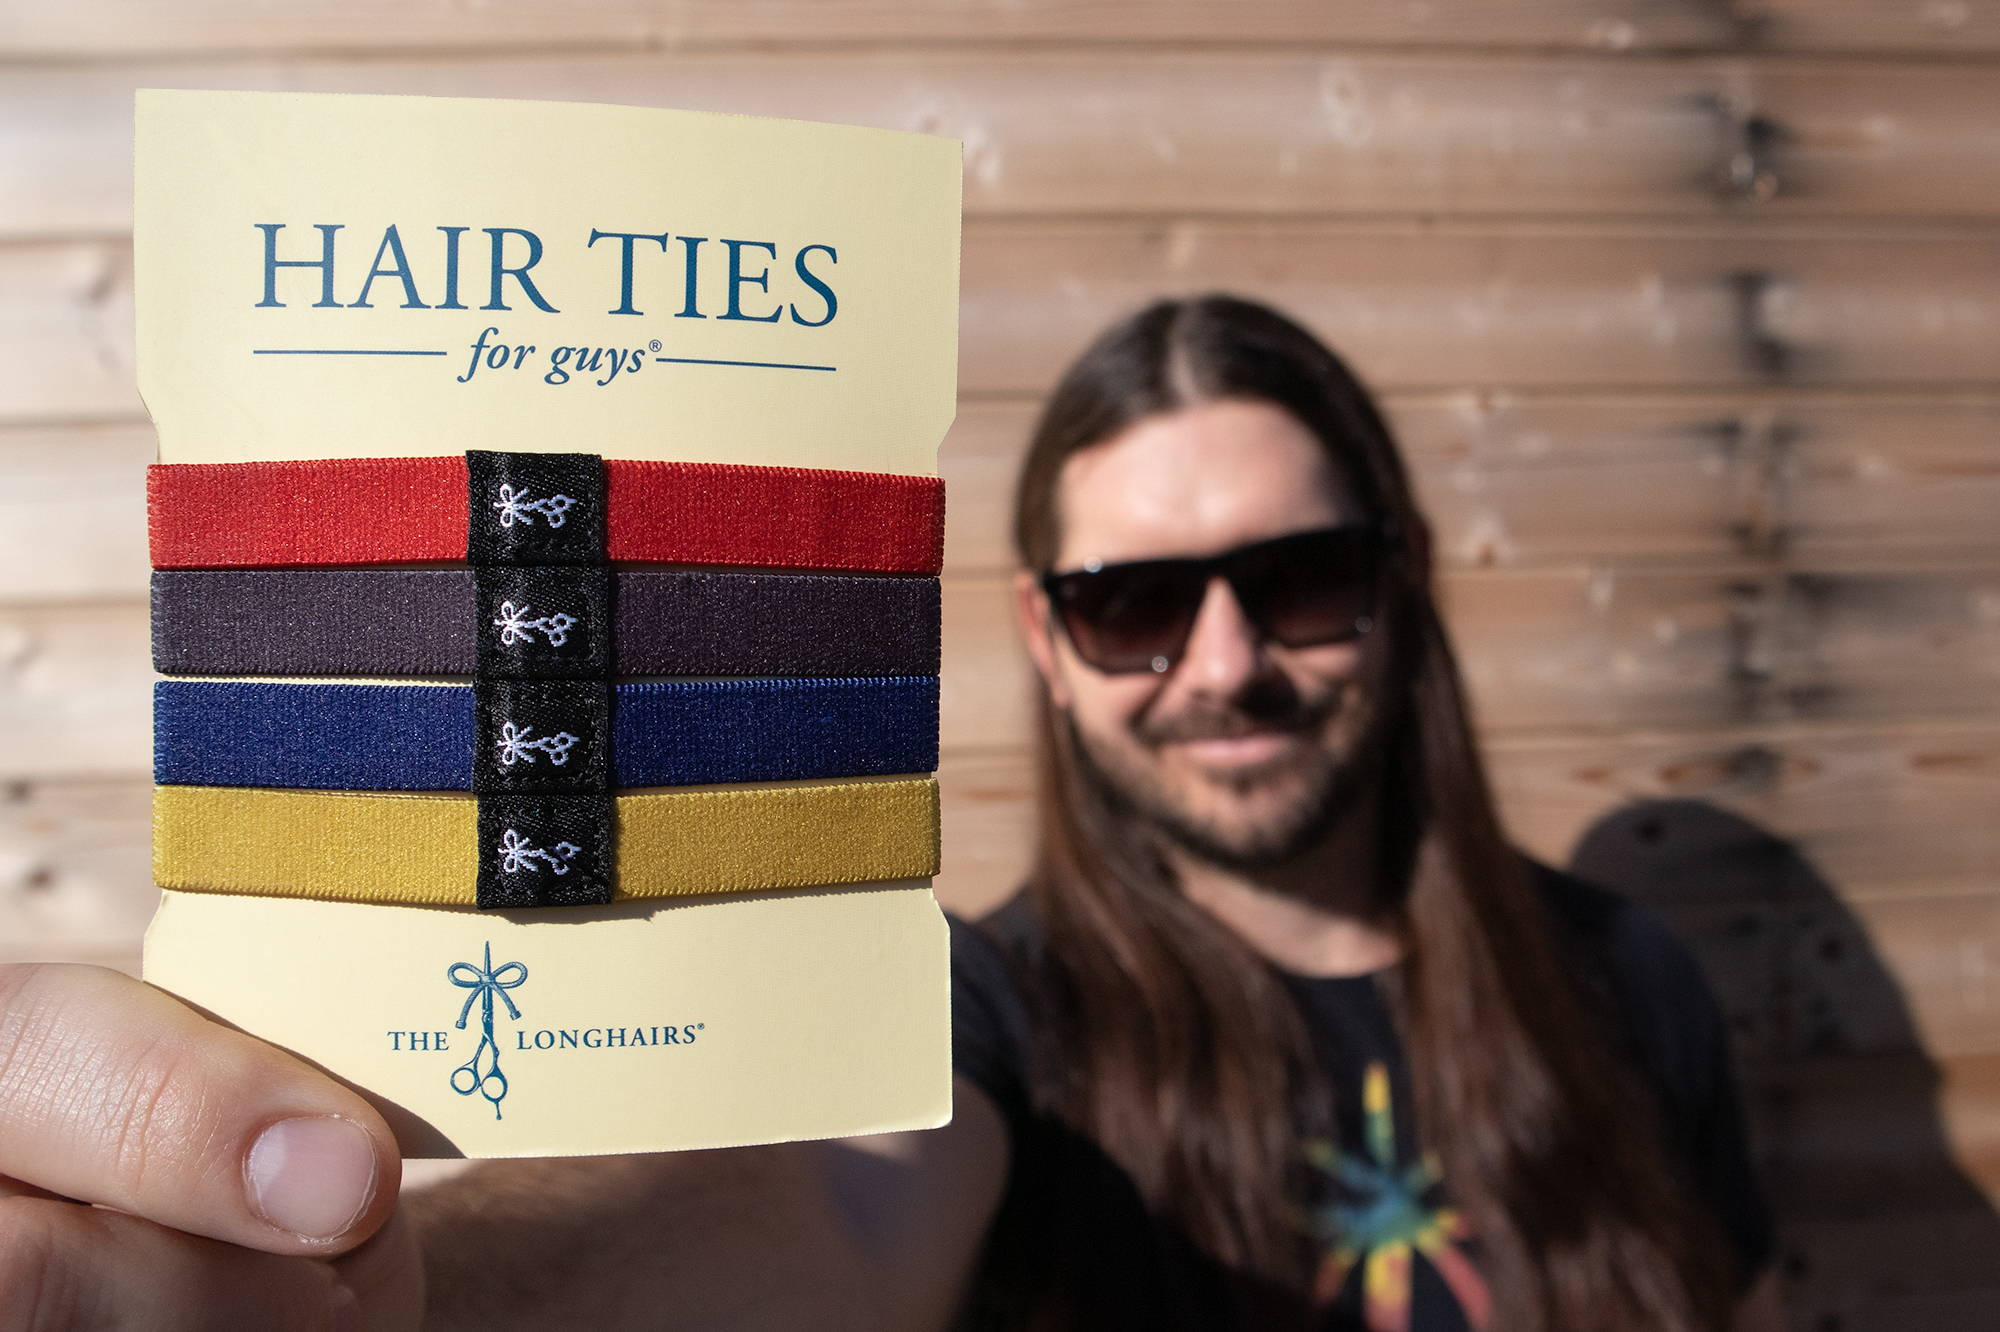 World s Best Hair Ties - Guaranteed – The Longhairs 78bc66c70fe